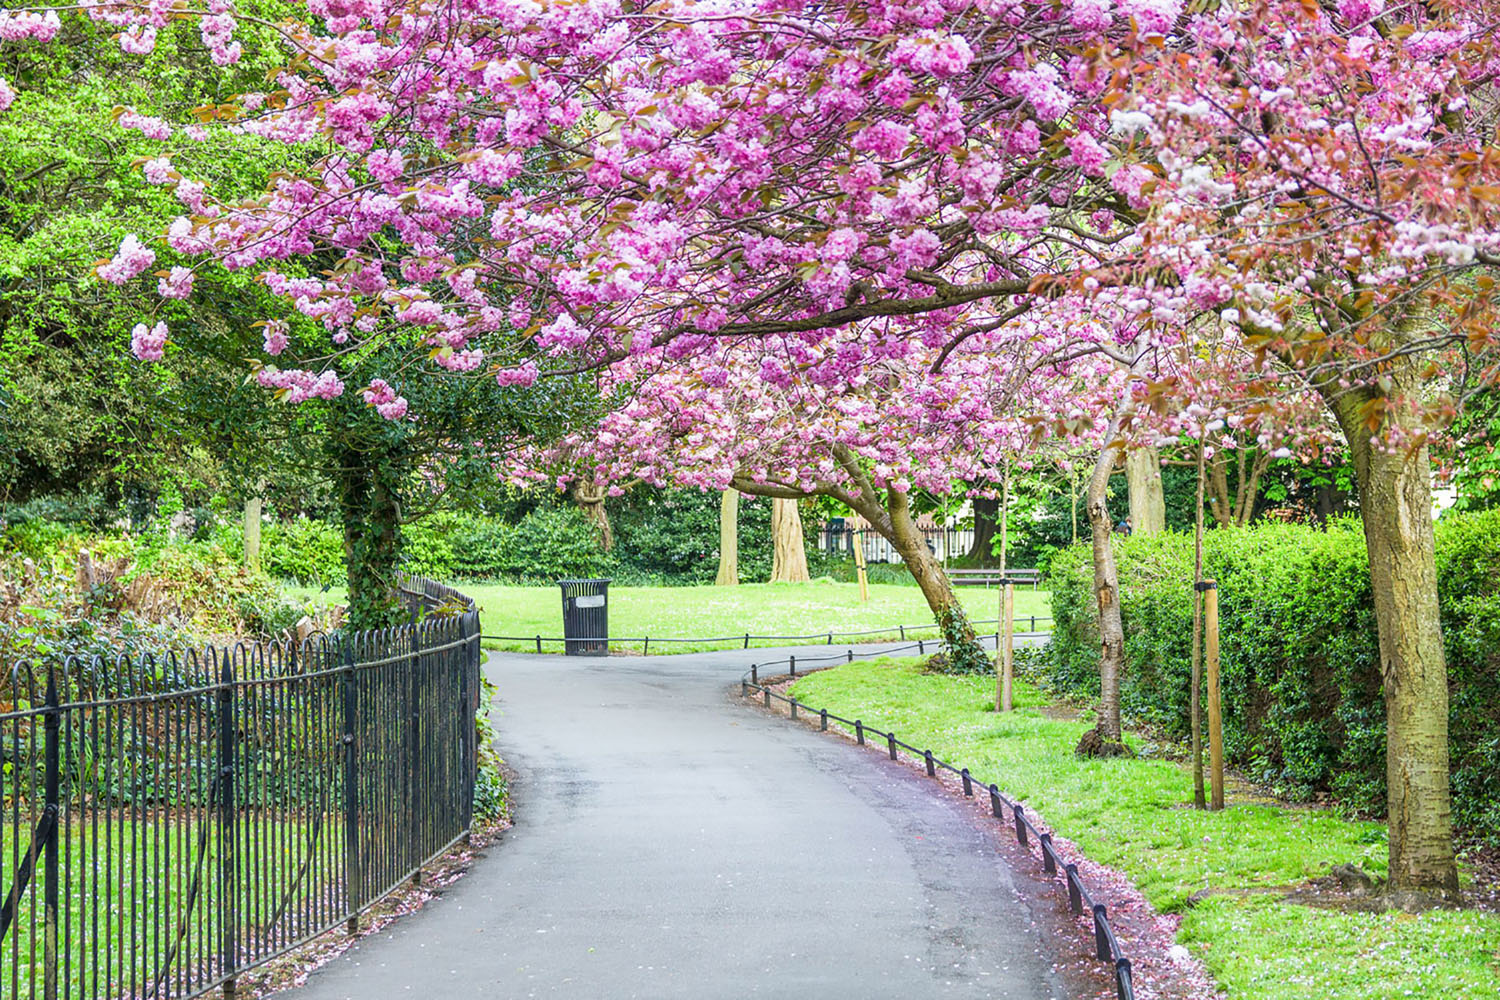 Saint Stephen's Green in Dublin with a pink flowering tree in bloom.